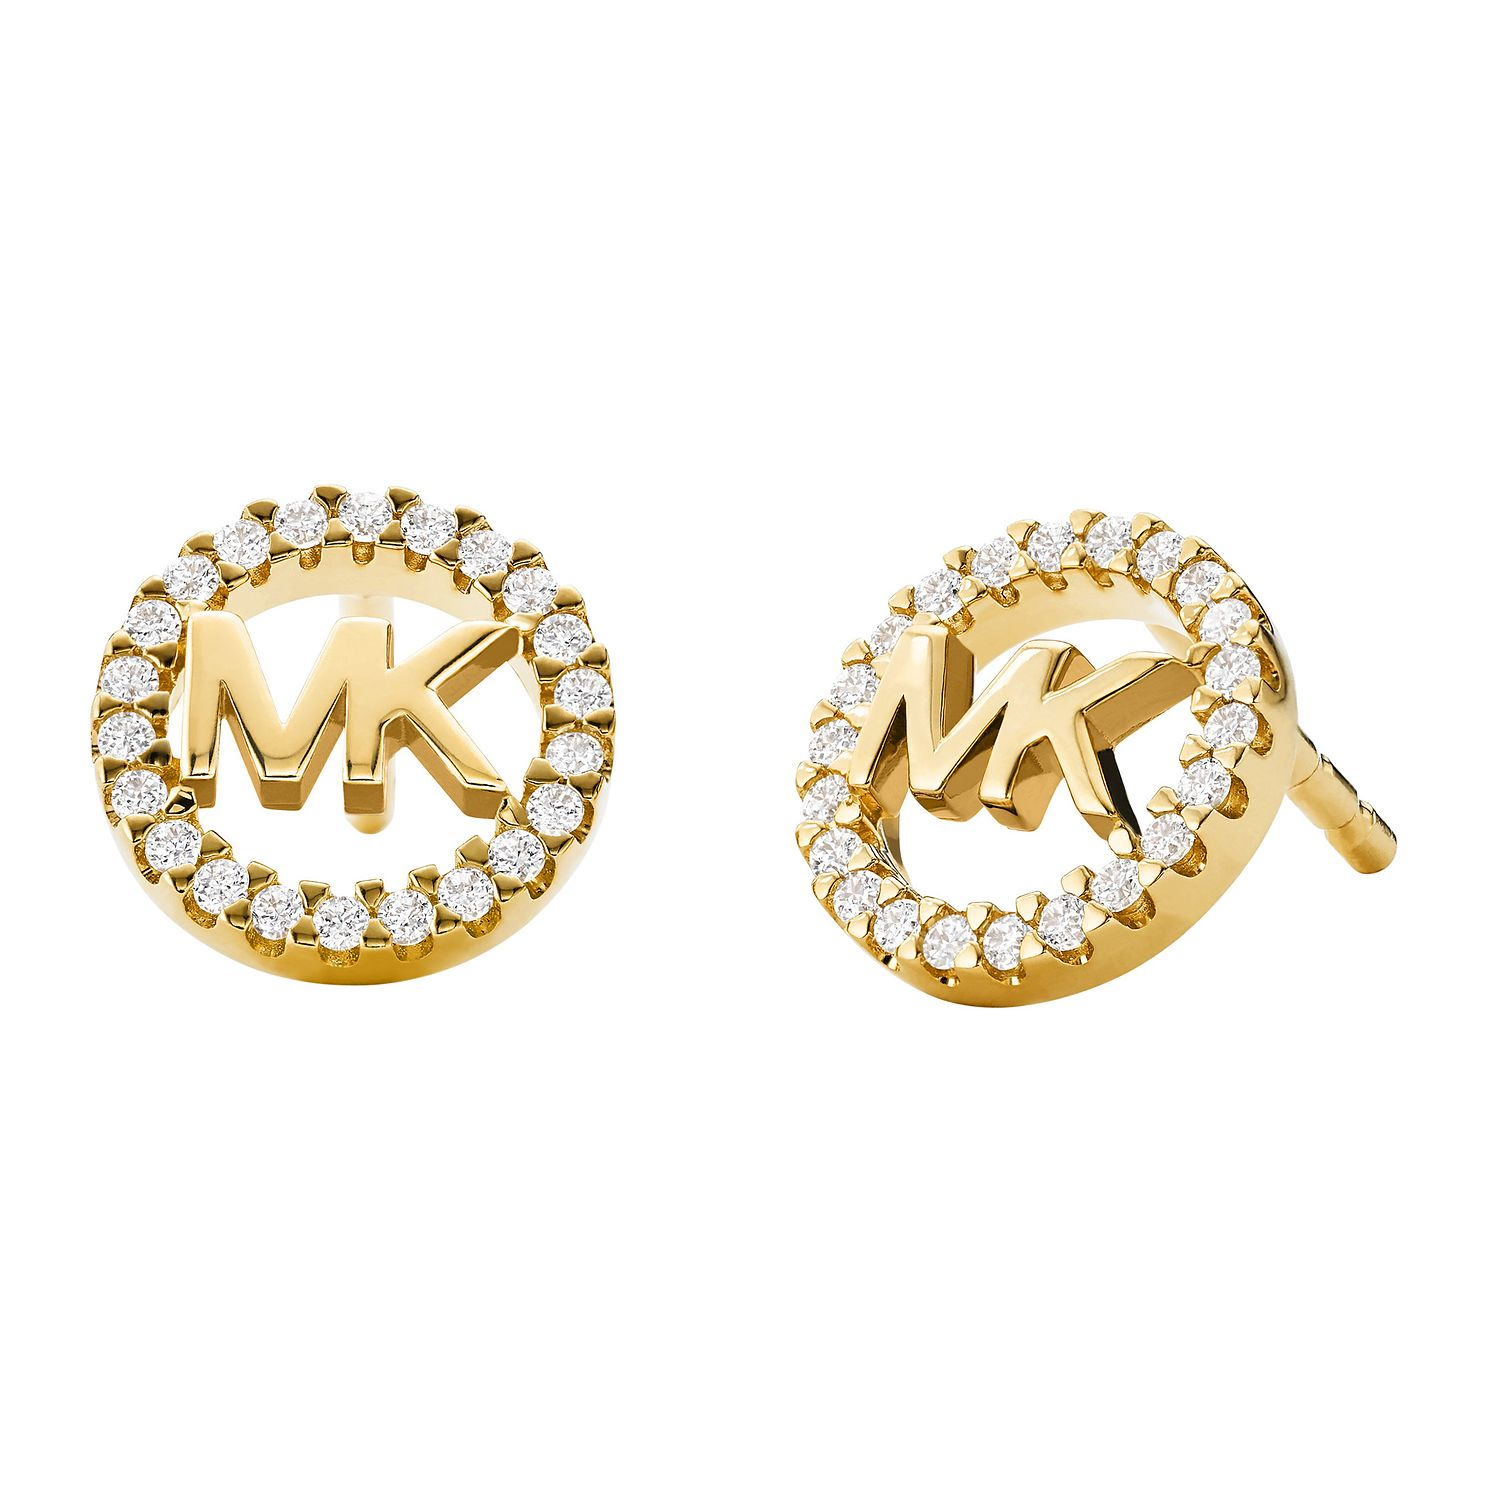 Michael Kors Logo Yellow Gold Tone Cubic Zirconia Earrings - Product number 5522560